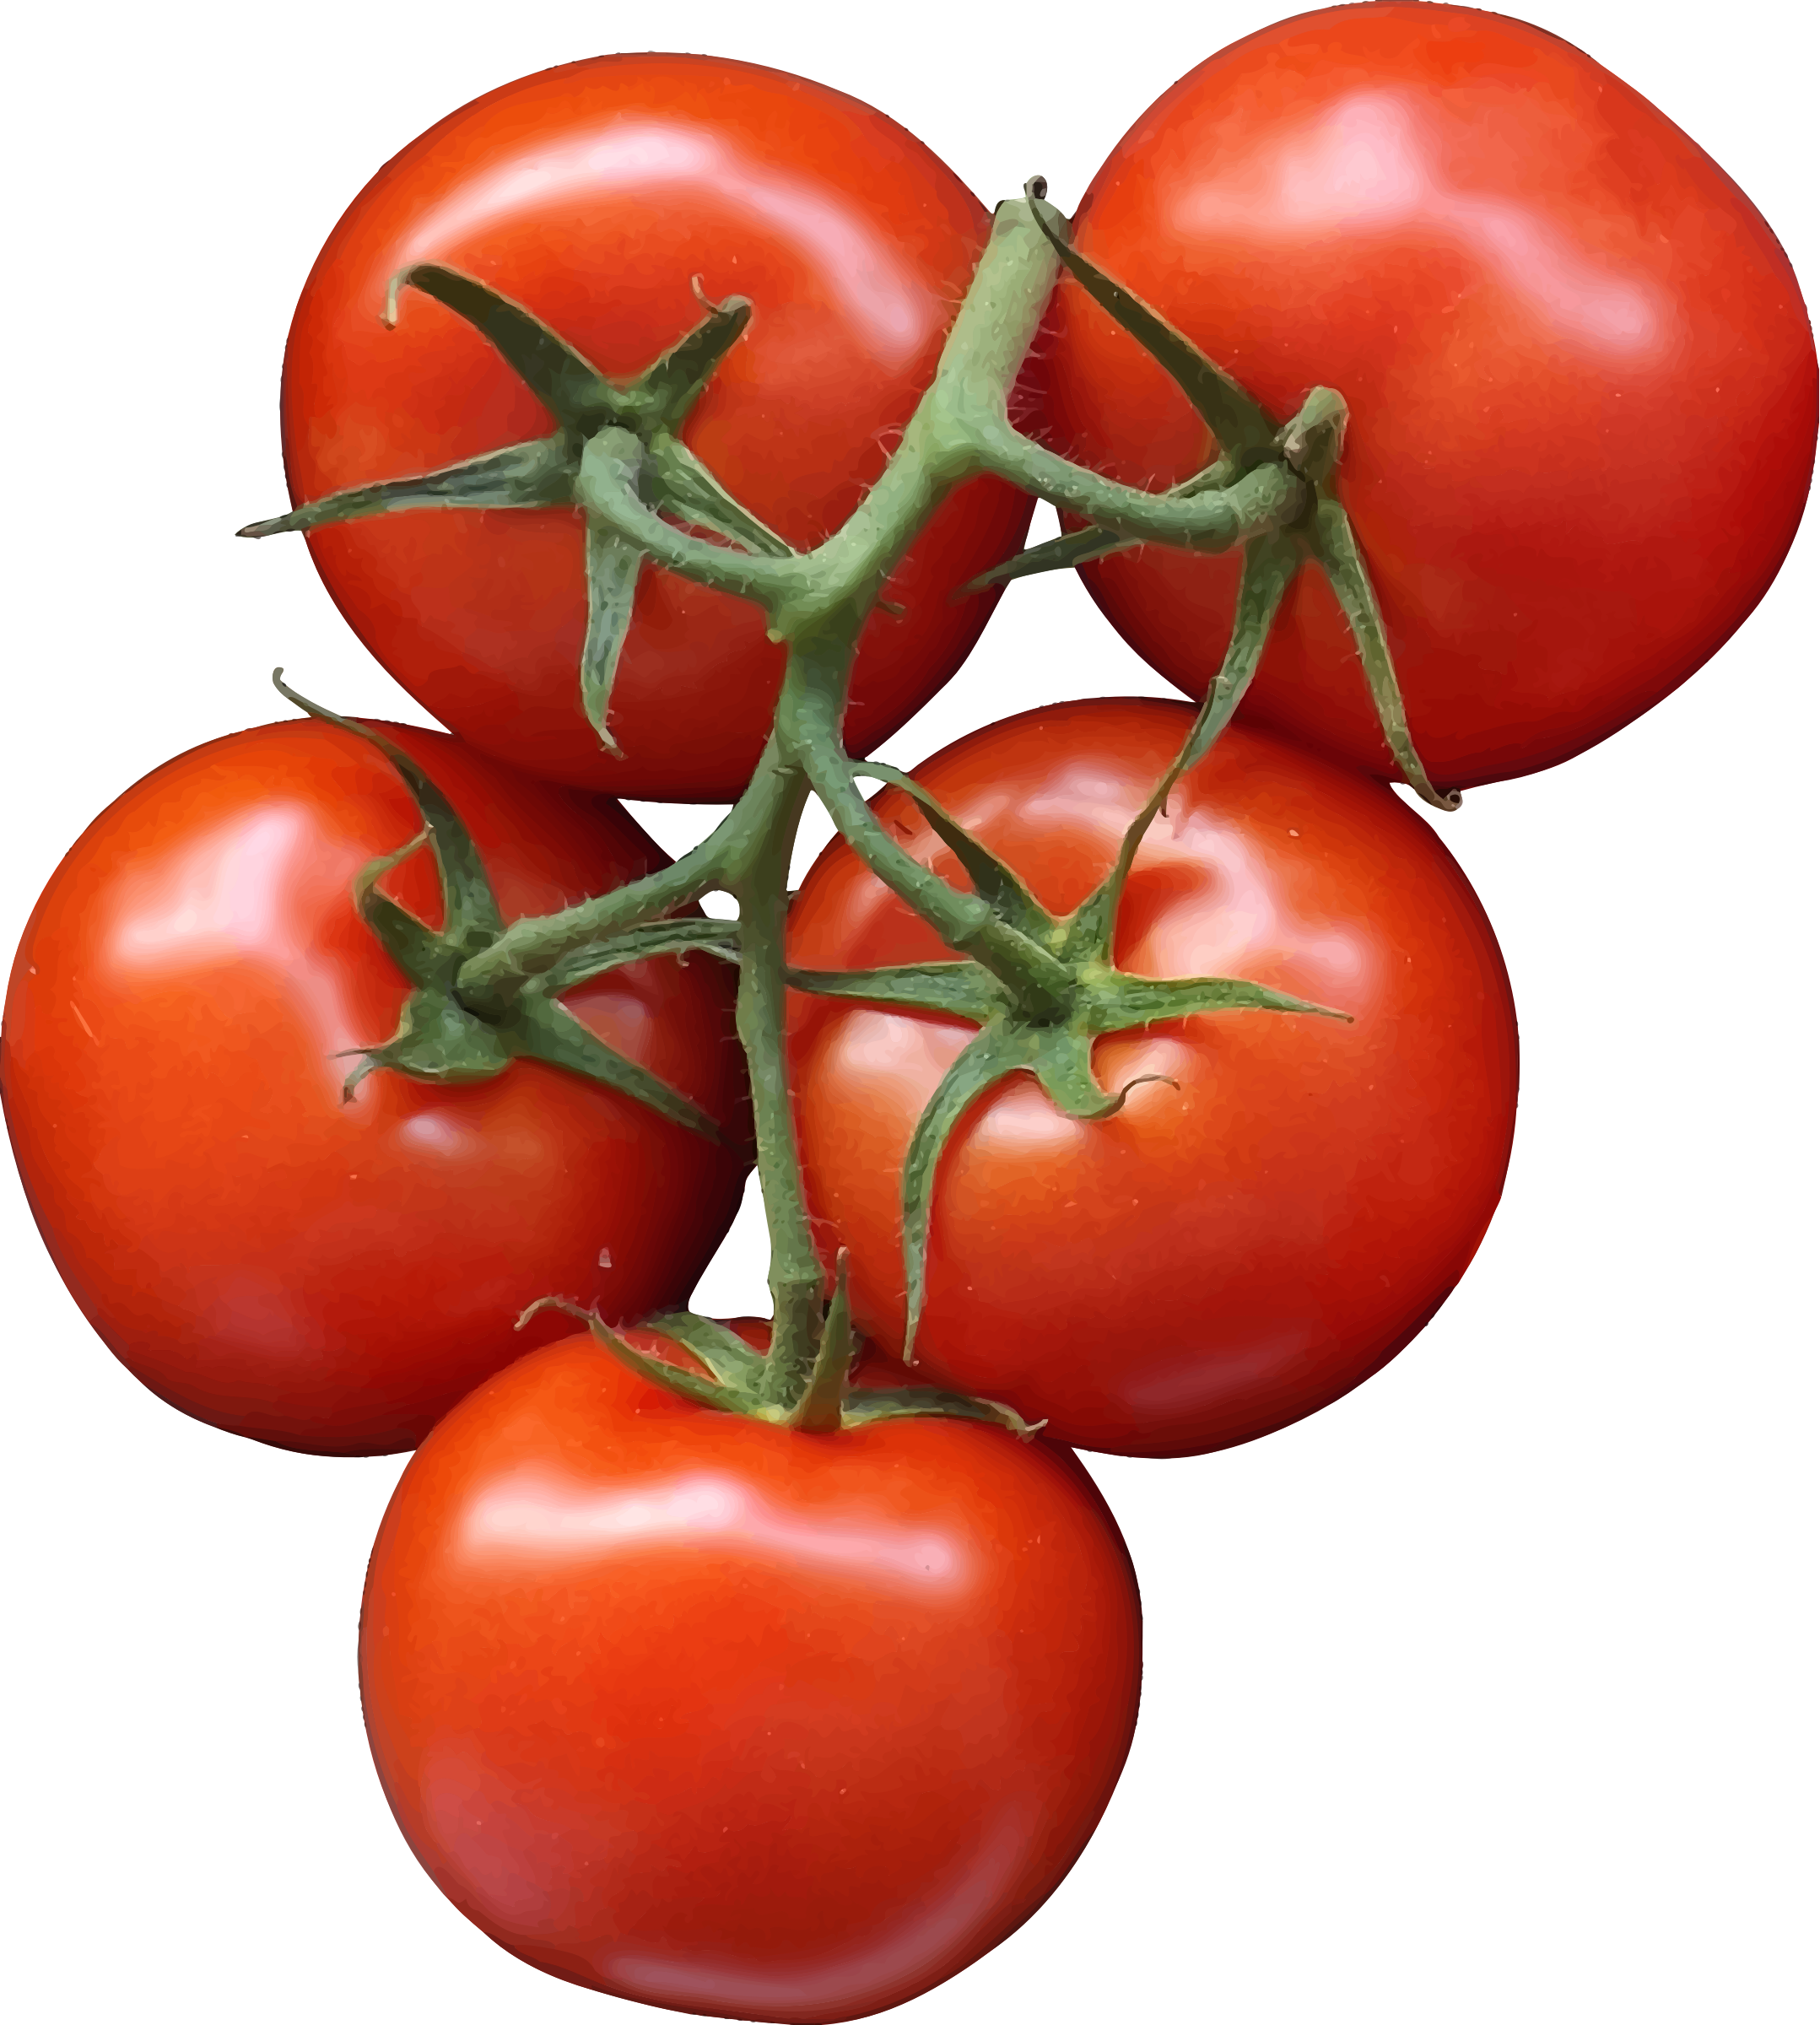 Tomatoes by Firkin